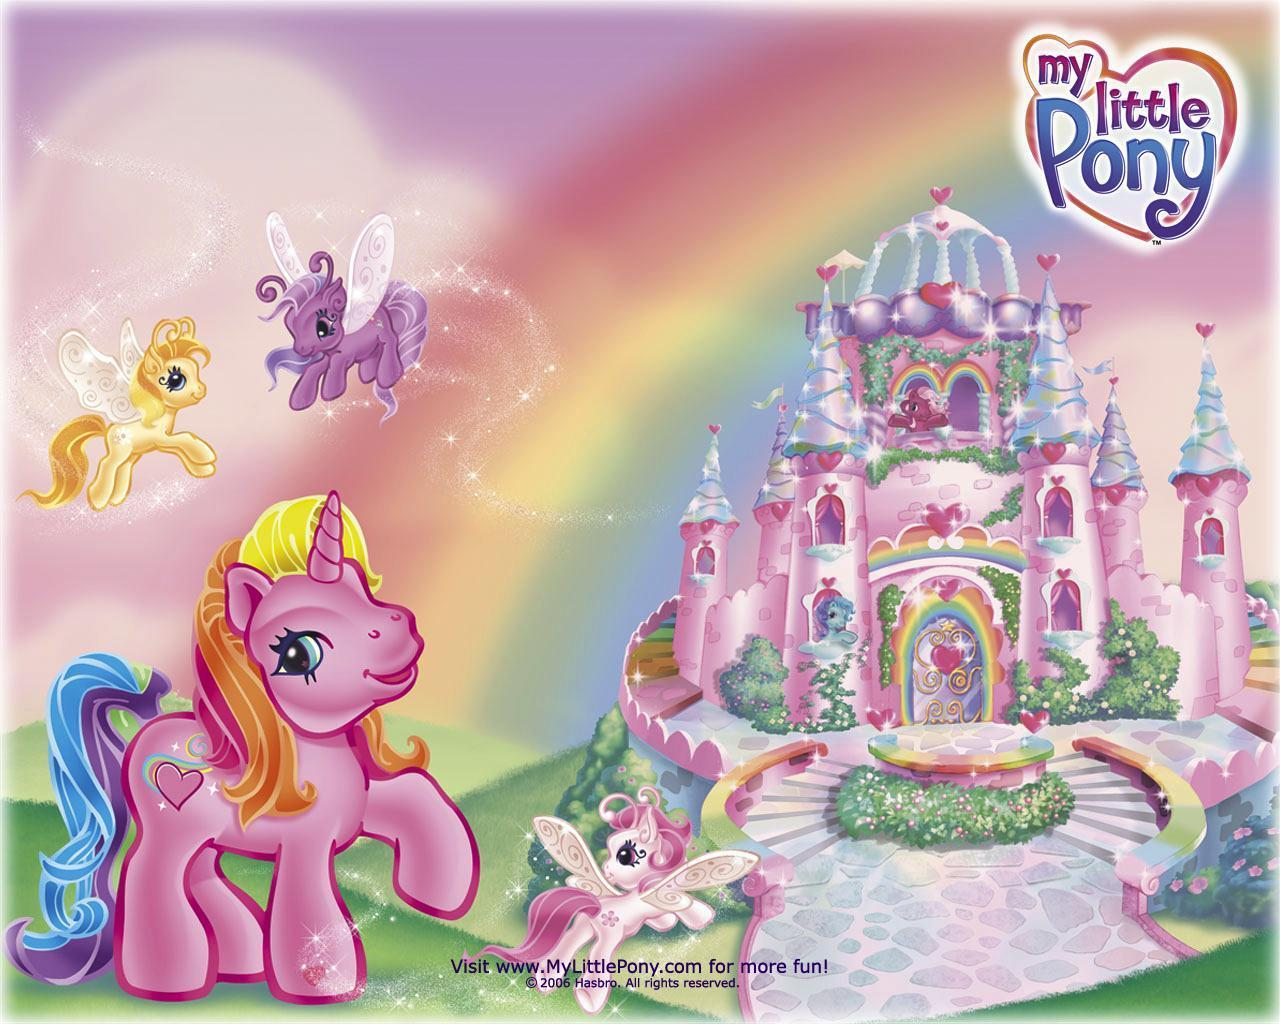 My Little Pony Wallpapers Download Free